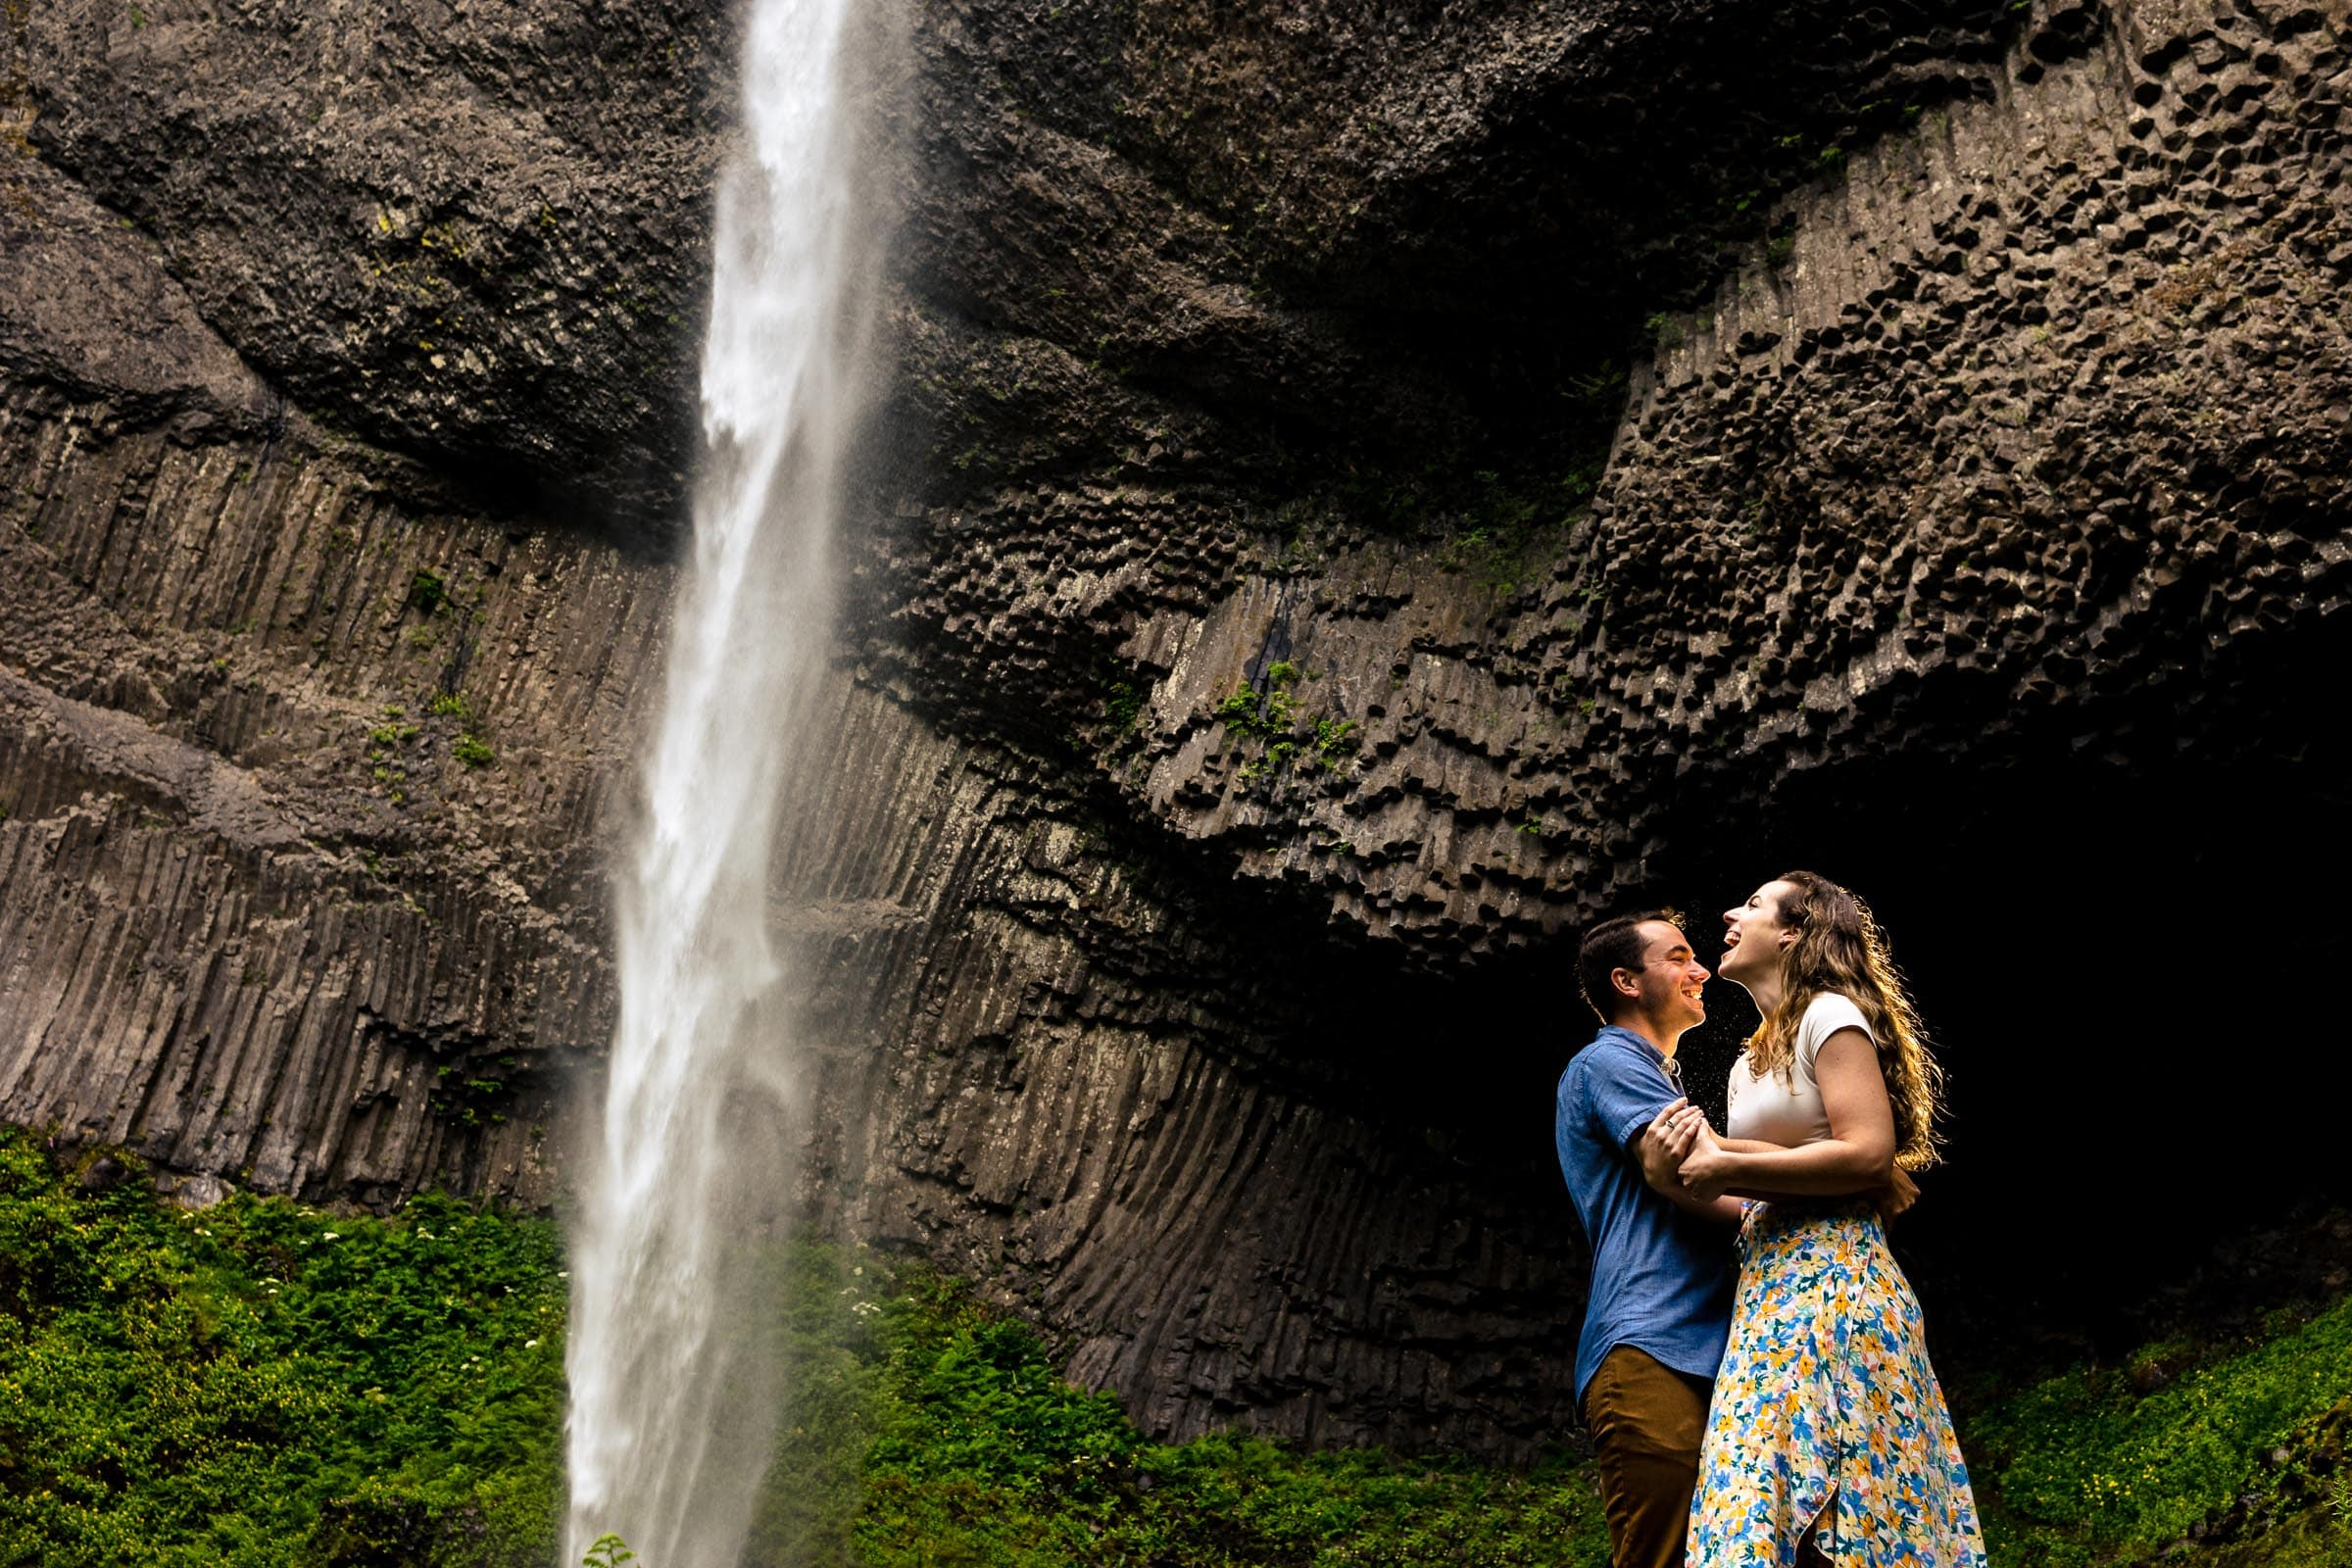 A couple laughing and holding each other under Latourell Falls just after their real proposal engagementmoment. Best engagement photos at Latourell Falls outside Portland near Multnomah Falls. Latourell Falls Engagement Photos by Jos and Tree.